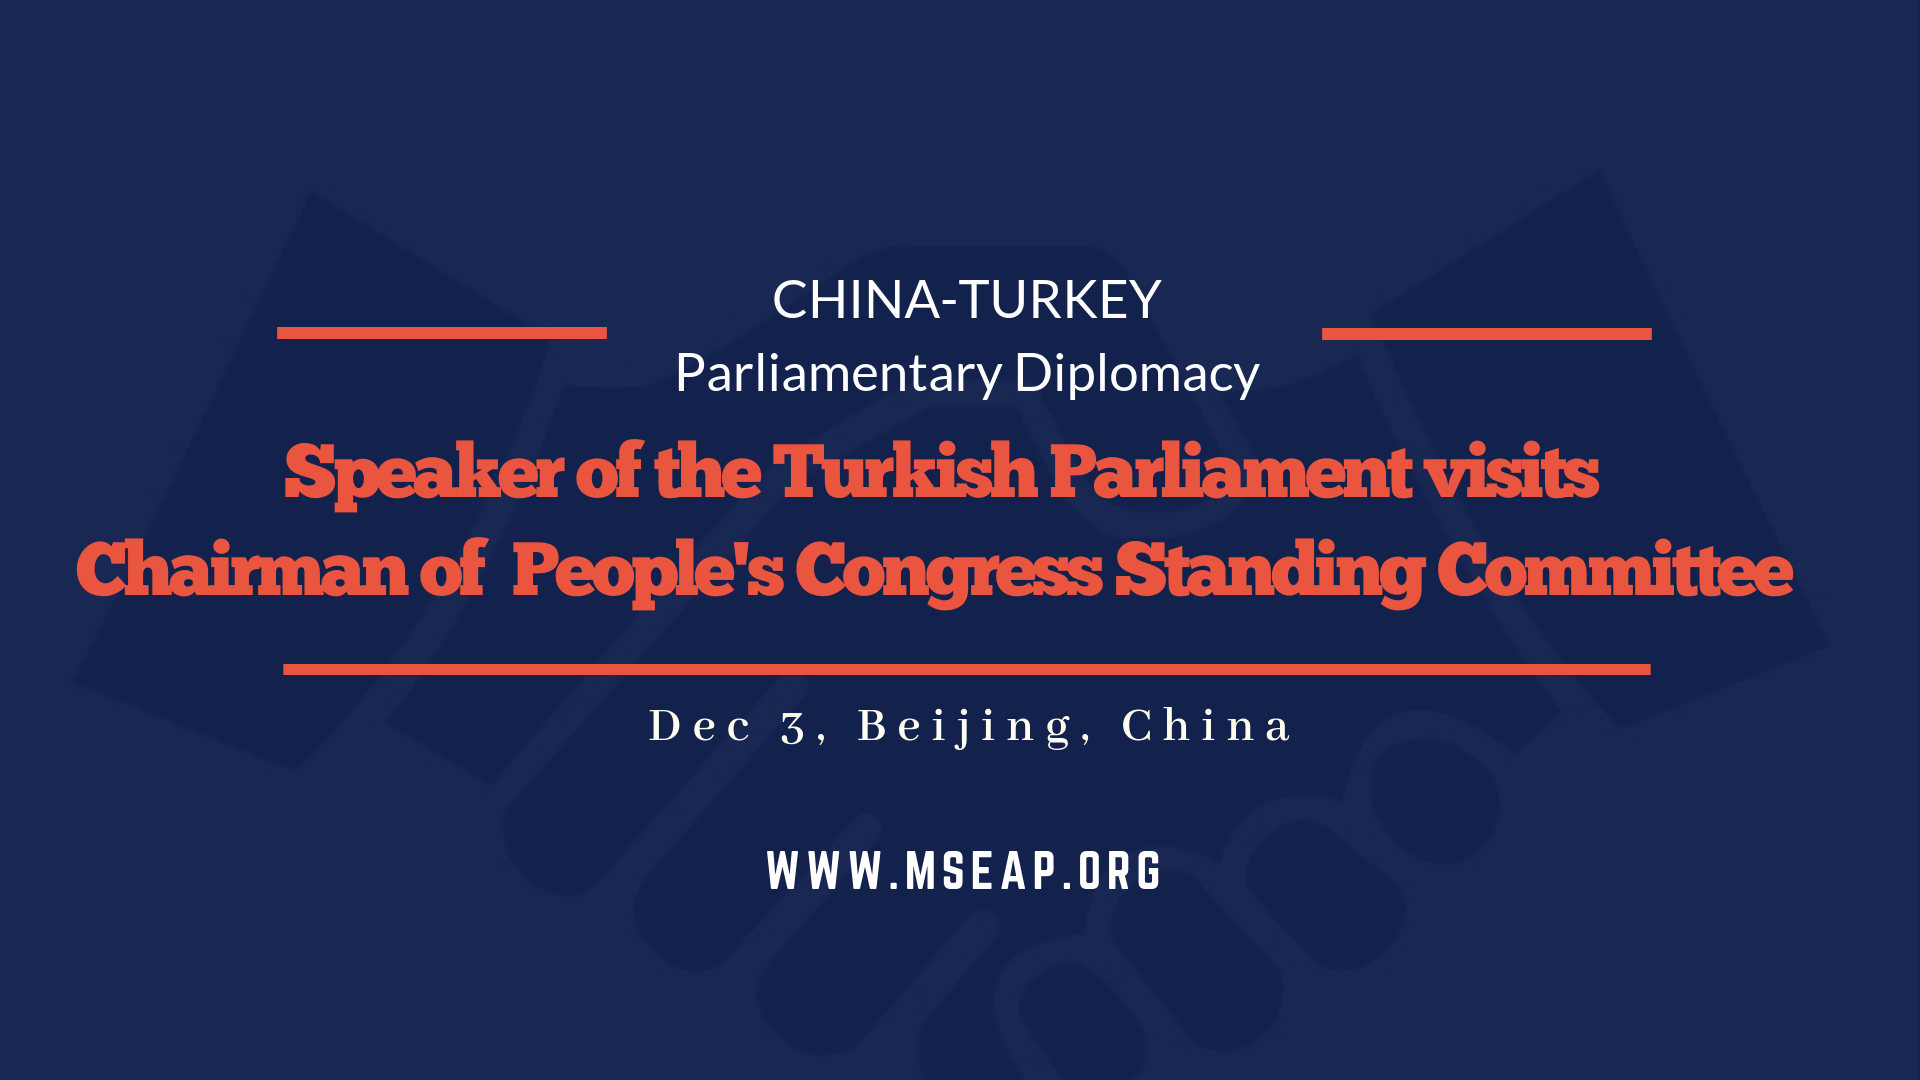 Speaker of the Grand National Assembly of Turkey visits the chairman of China's National People's Congress Standing Committee